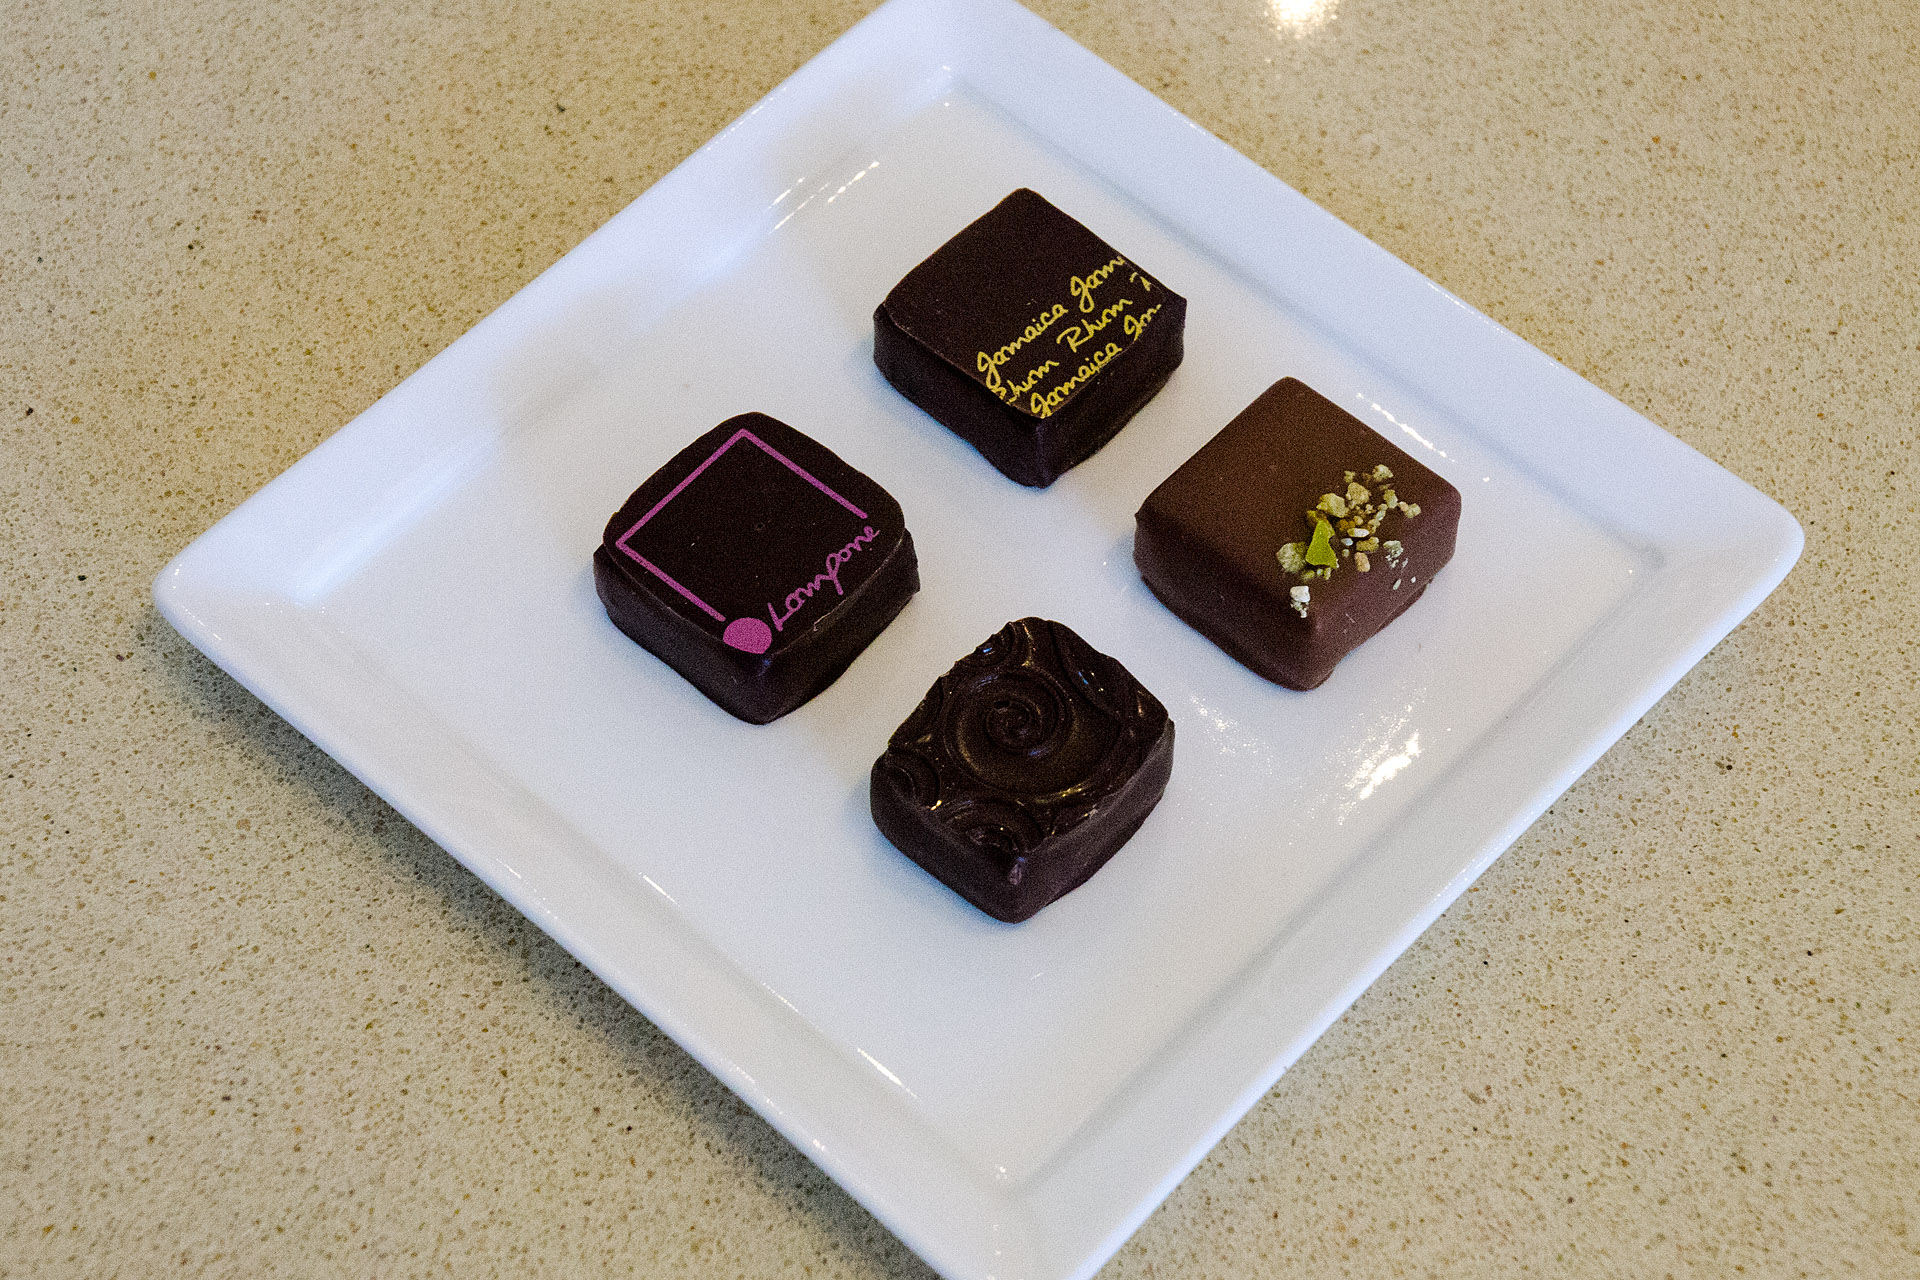 Slitti chocolates